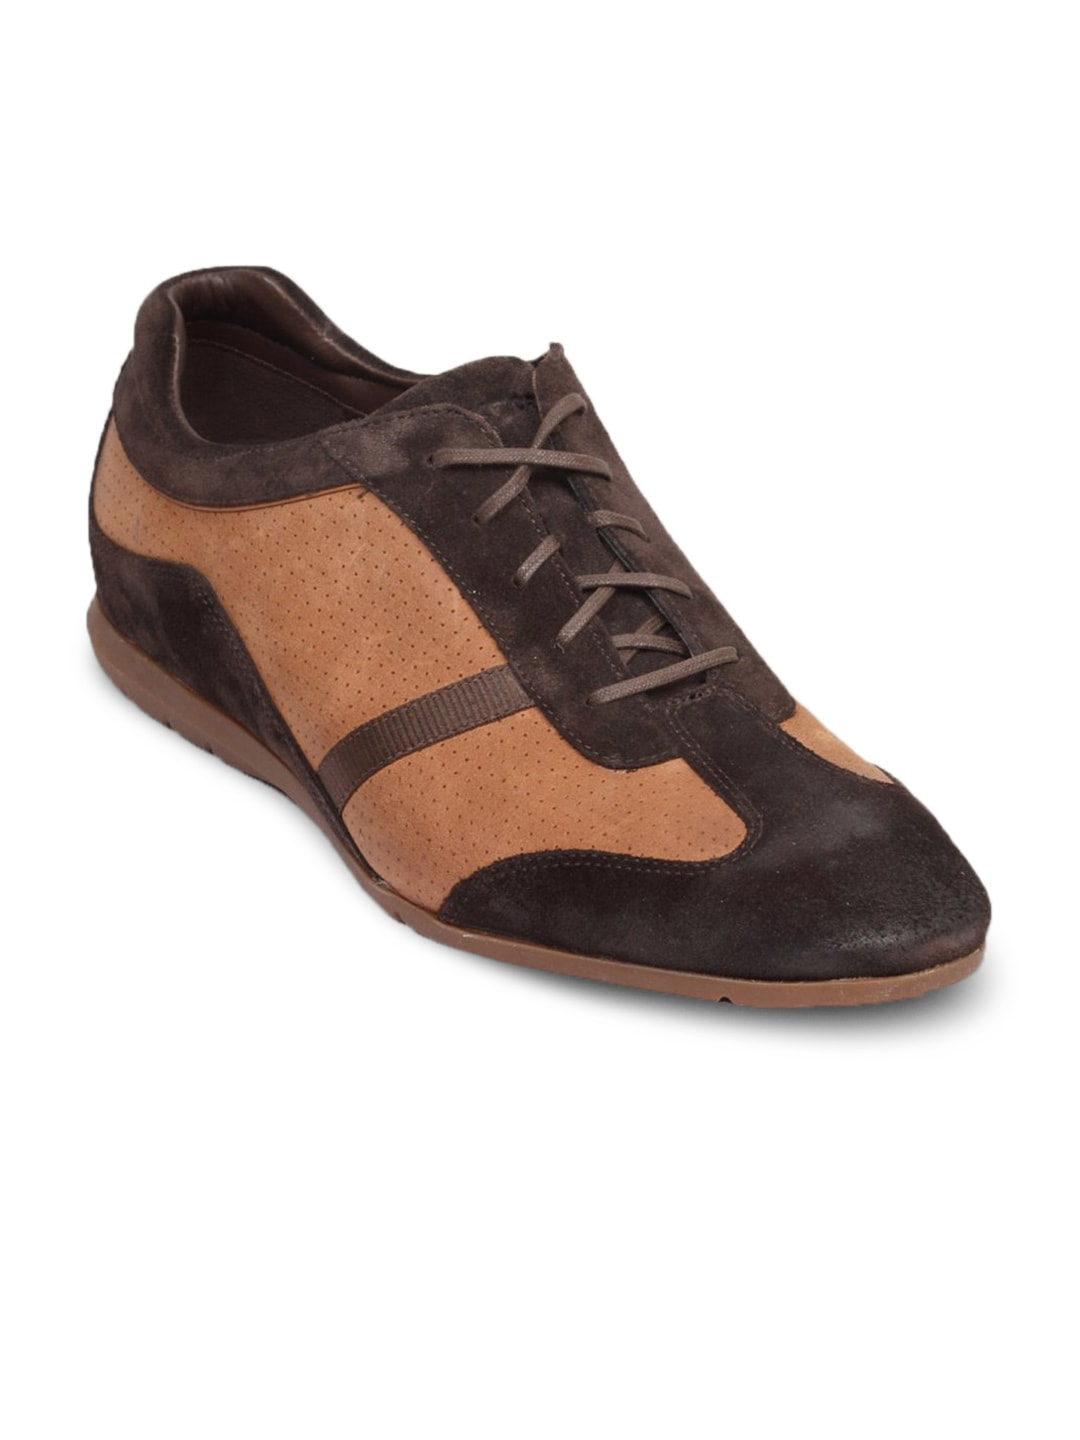 Rockport Rockport Men's Stanton Bitt Choc Suede Shoe (Brown)